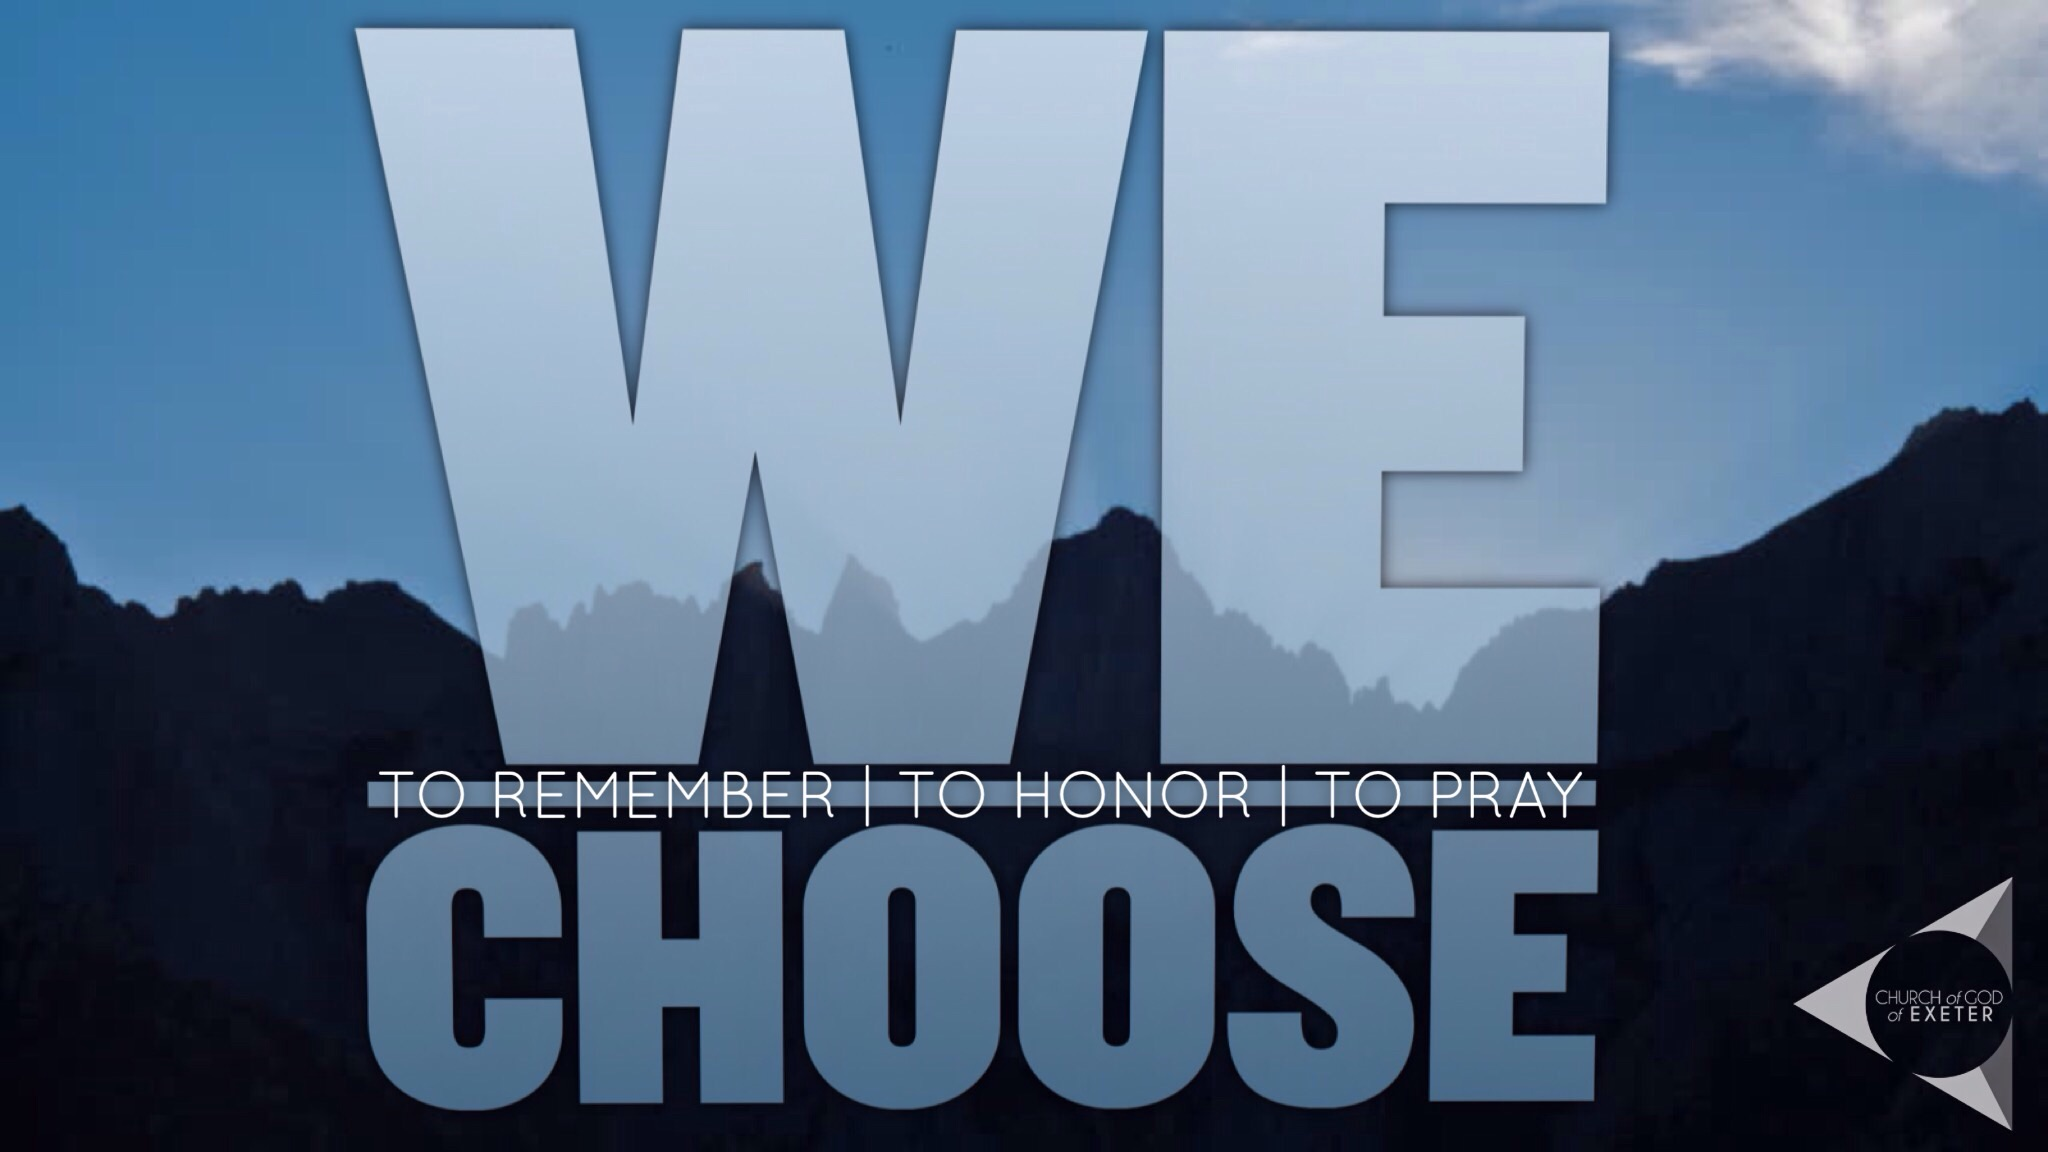 Our We Choose Service is at 9:30am on 9/11 at 246 W. Chestnut in Exeter